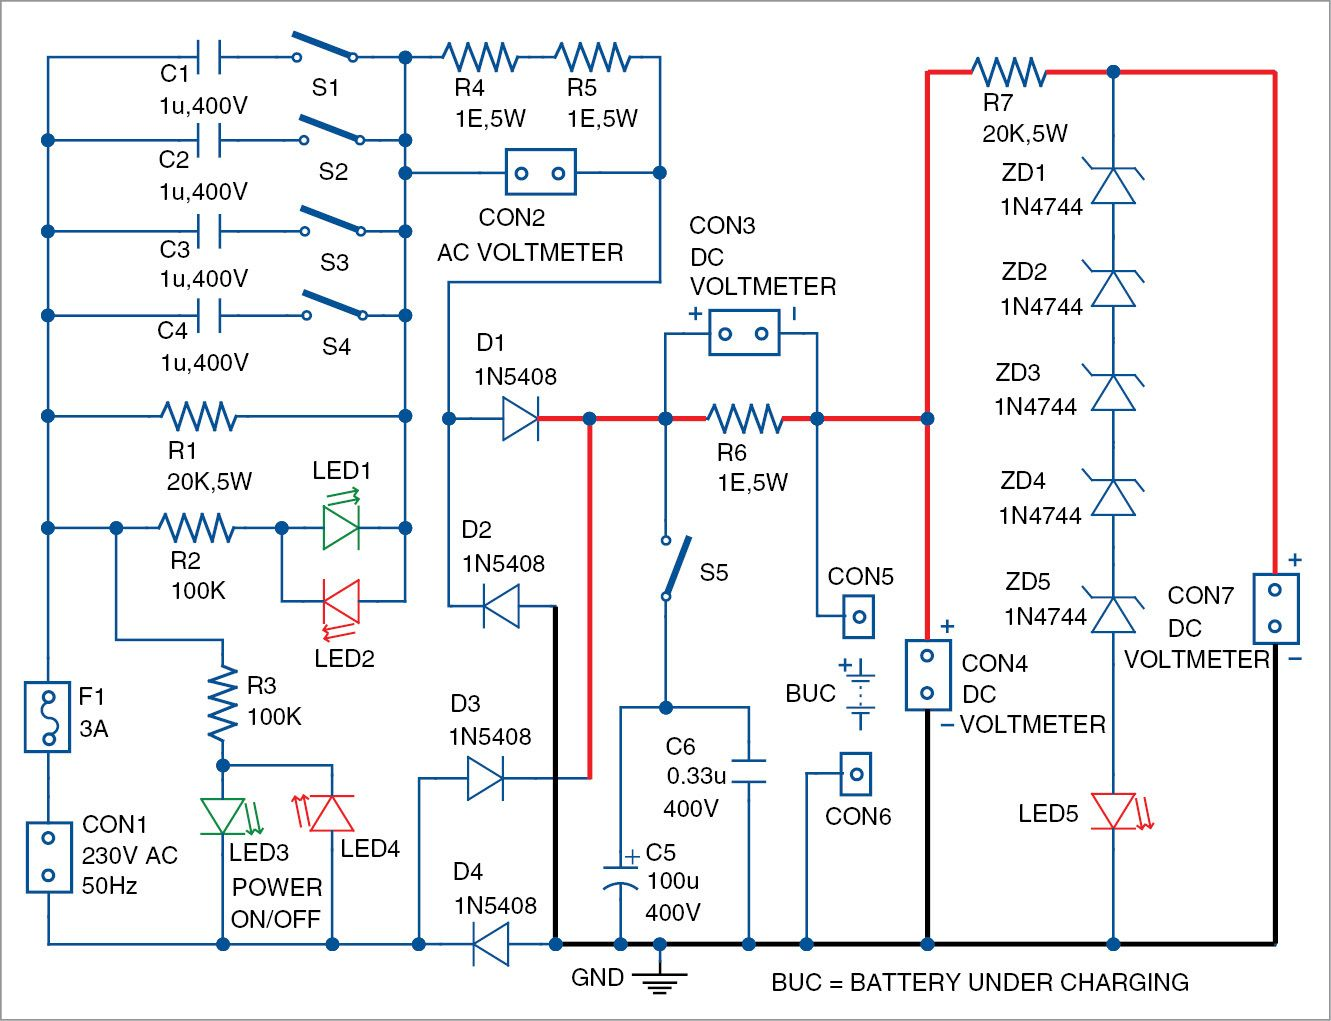 Simple Low Cost And Versatile Battery Charger Diy Pinterest Supply Ucc28600 0 30v 5a Adjustable Smps Circuit Schematic In This Project We Are Going To Build A Ranging From 6v Through 48v For Home